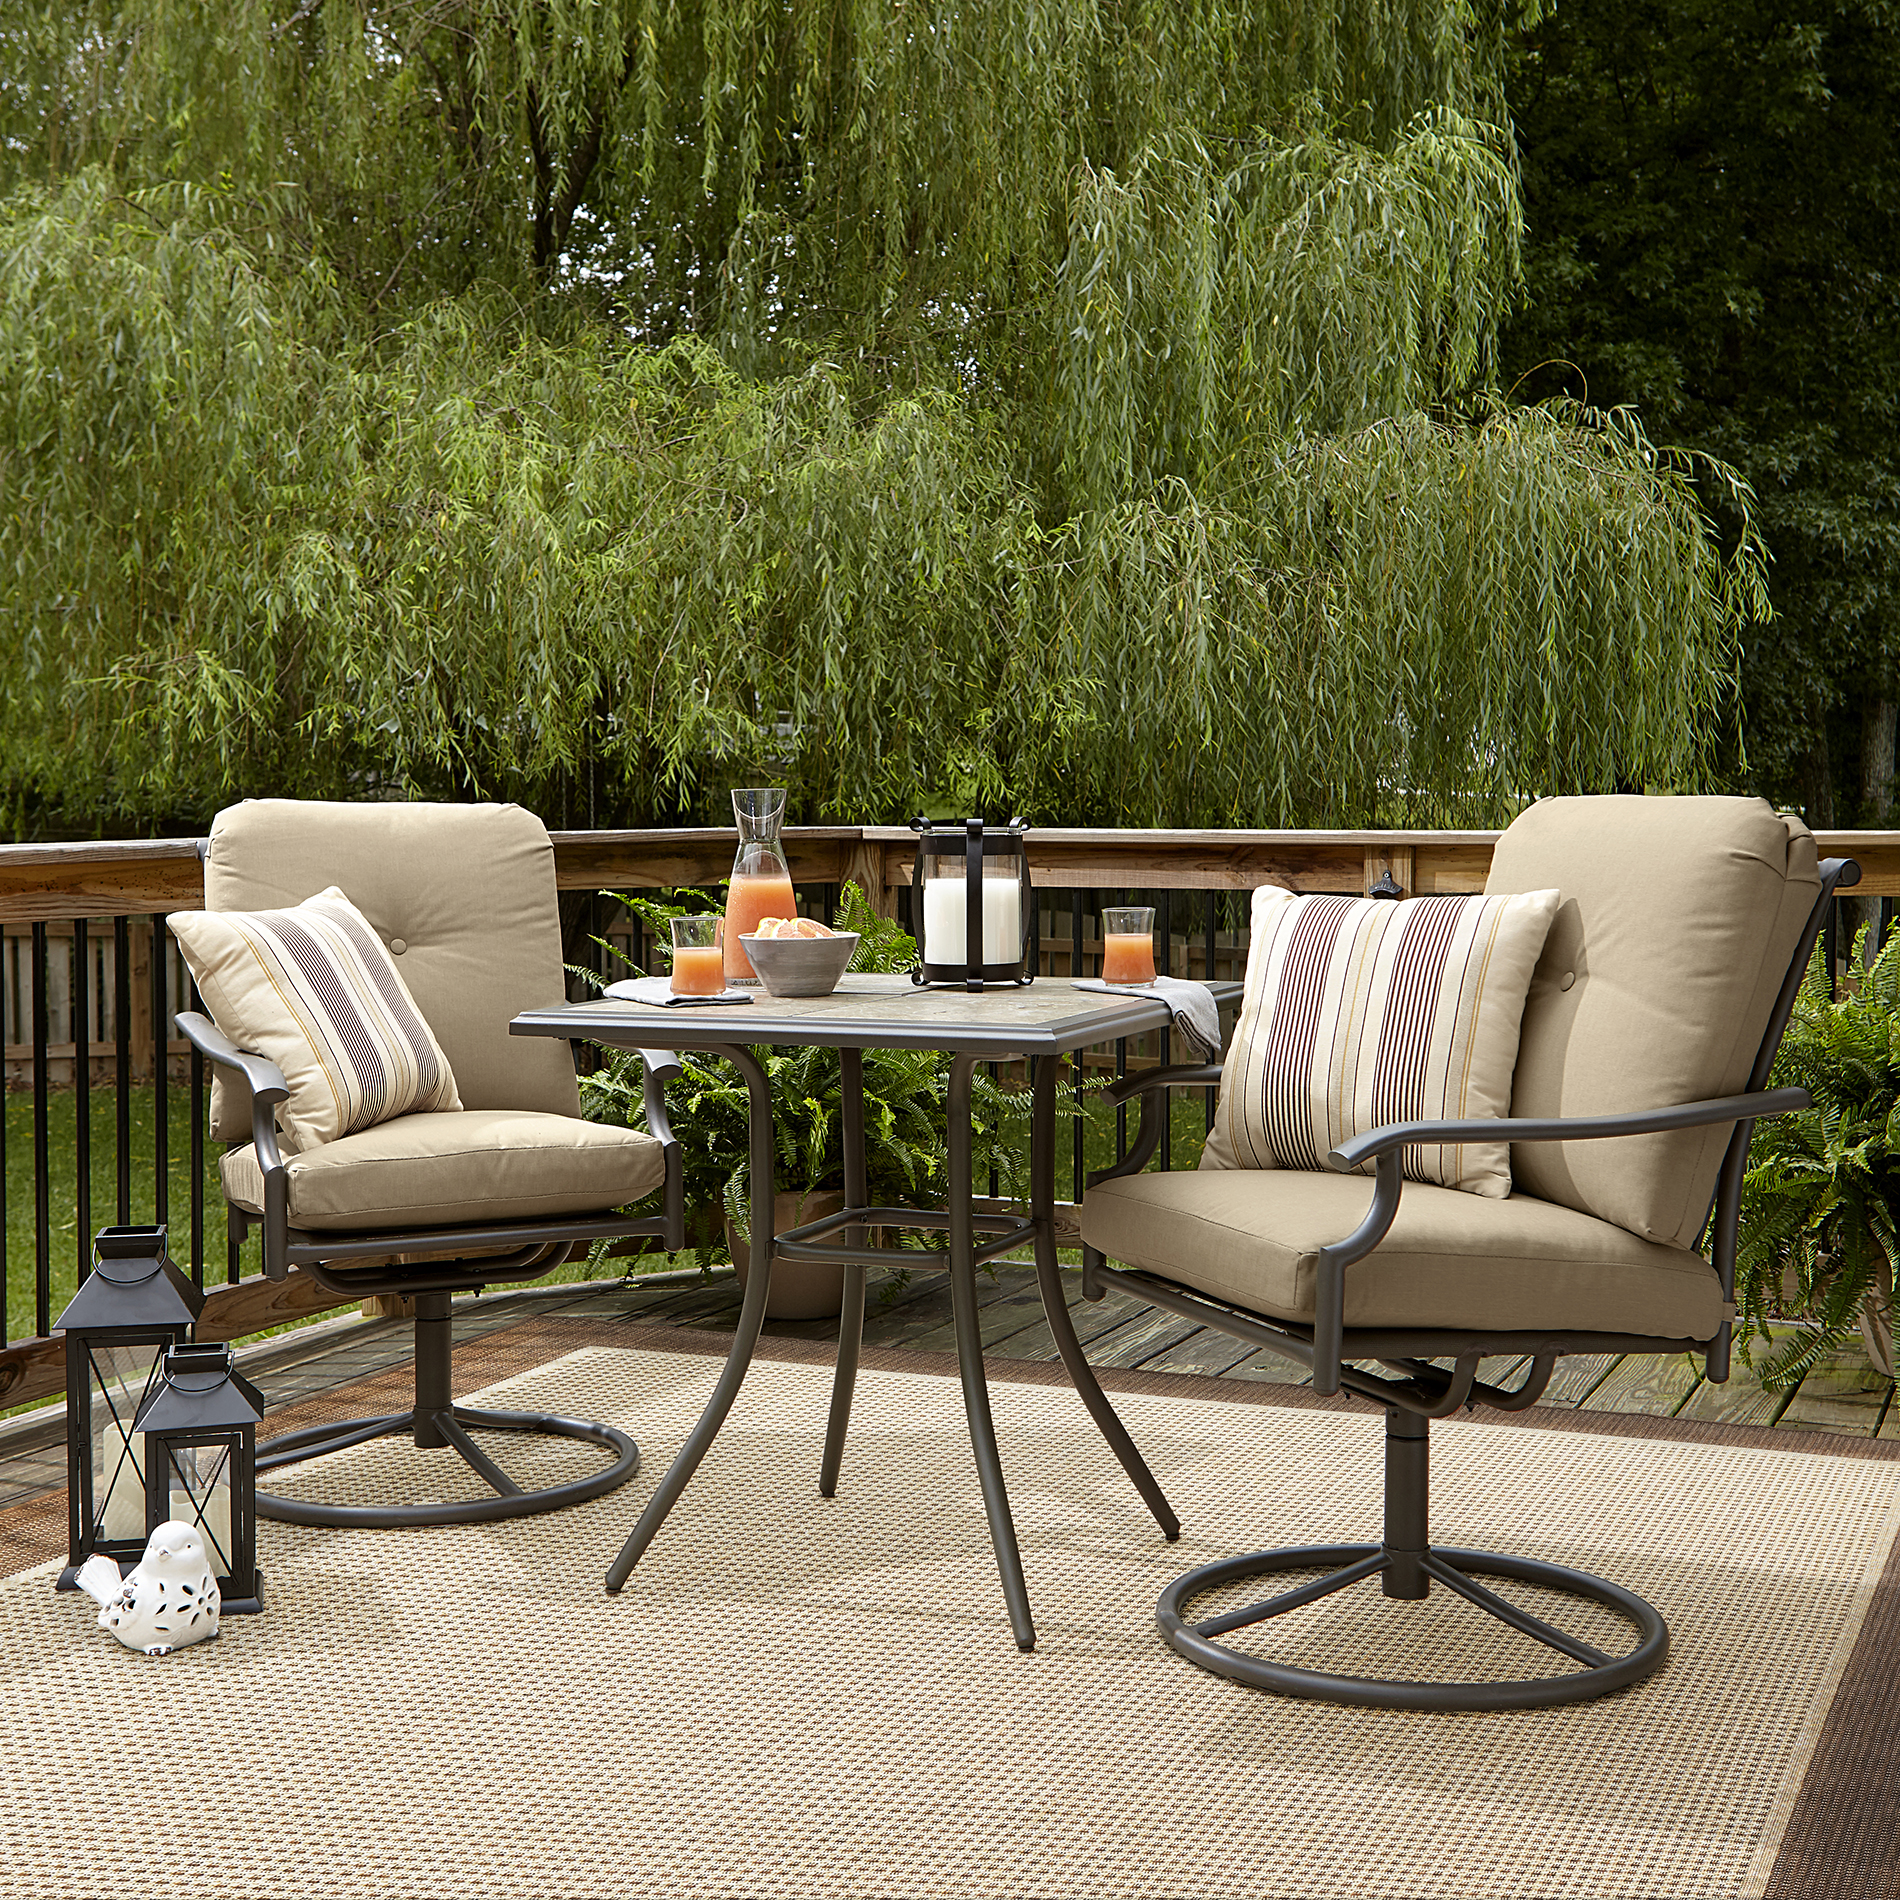 Garden Oasis Brookston 3-Piece Swivel Bistro Set - Stone *Limited Availability